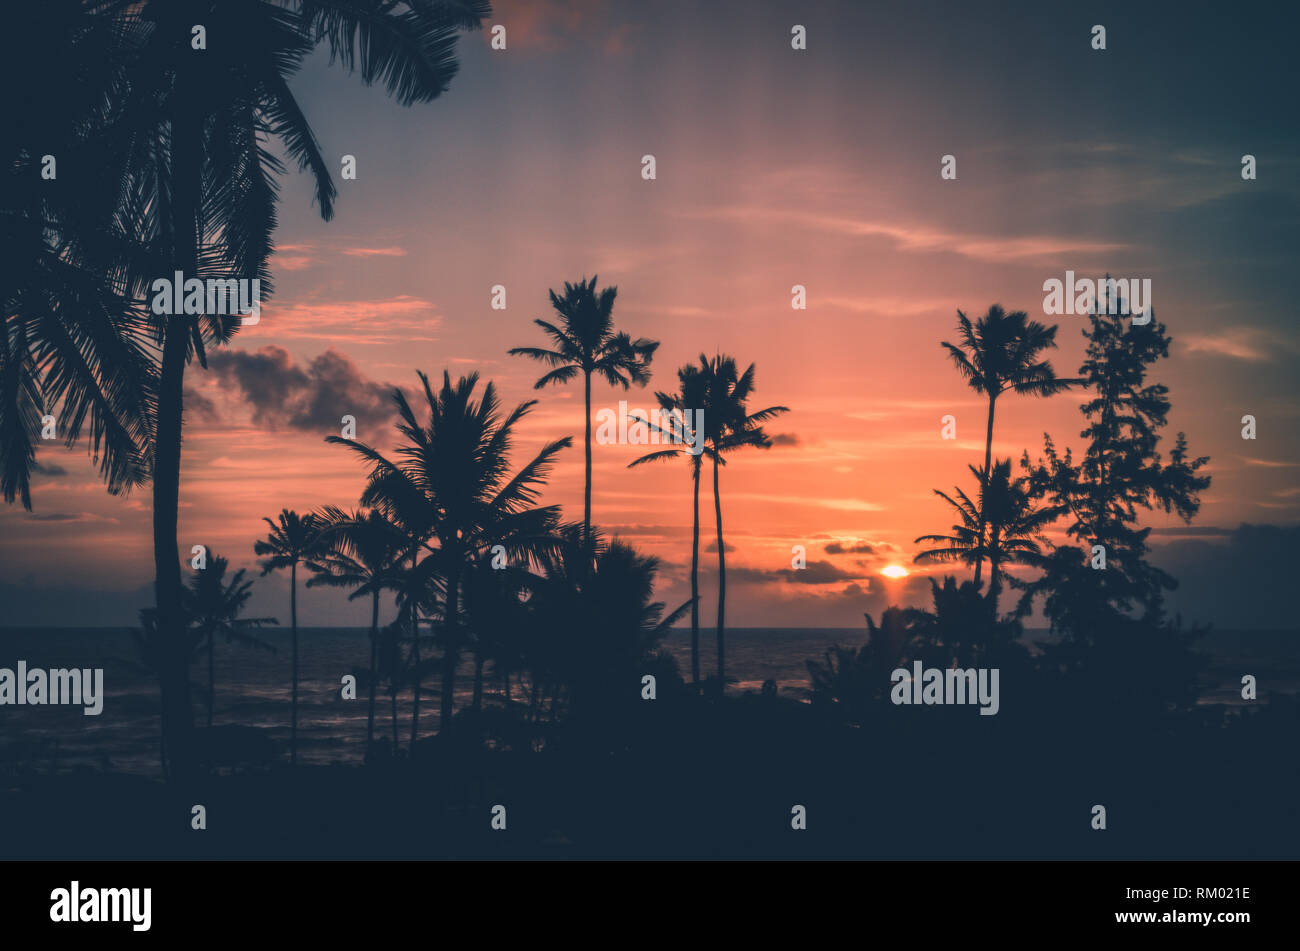 Hawaii, palm trees and sunsets a three commonly related terms. This picture present the trhee of them in a very harmonic way. - Stock Image